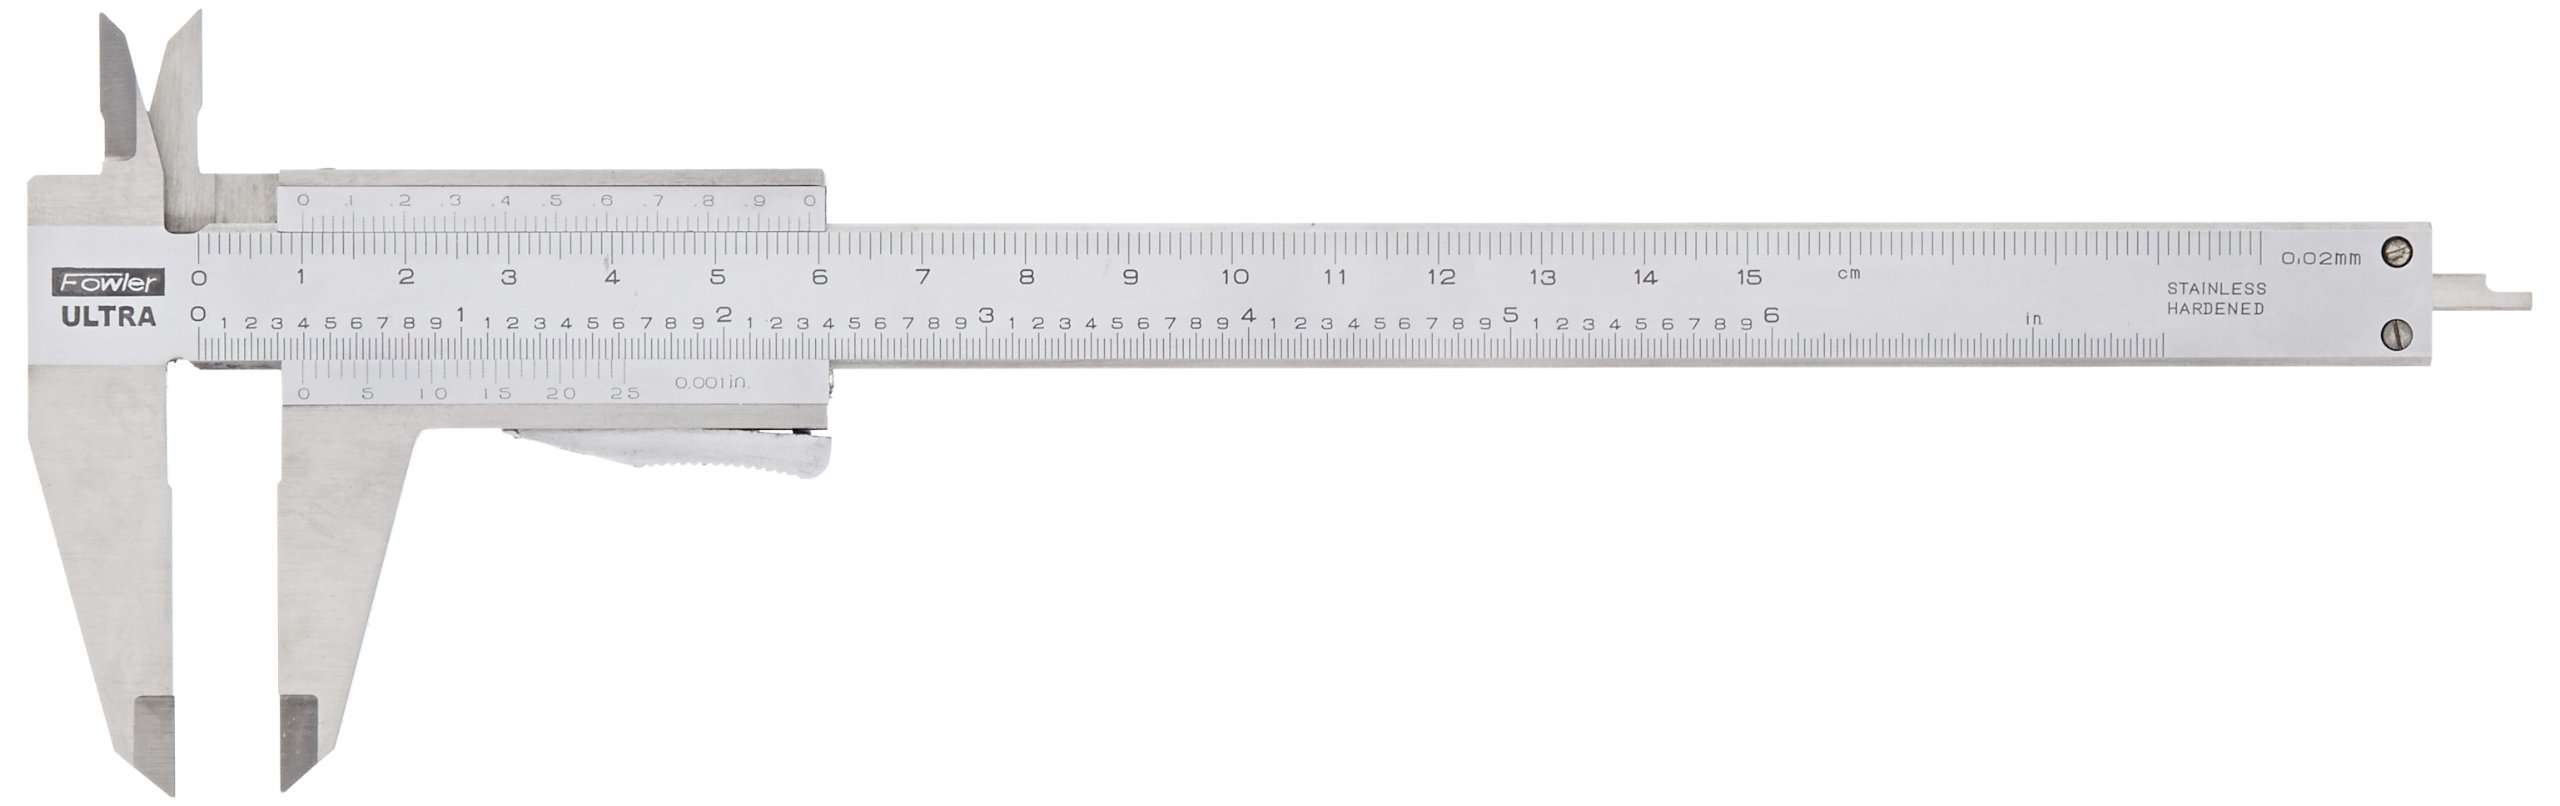 52-060-016-0 - Vernier Caliper - Parallax Free with Thumb Lock